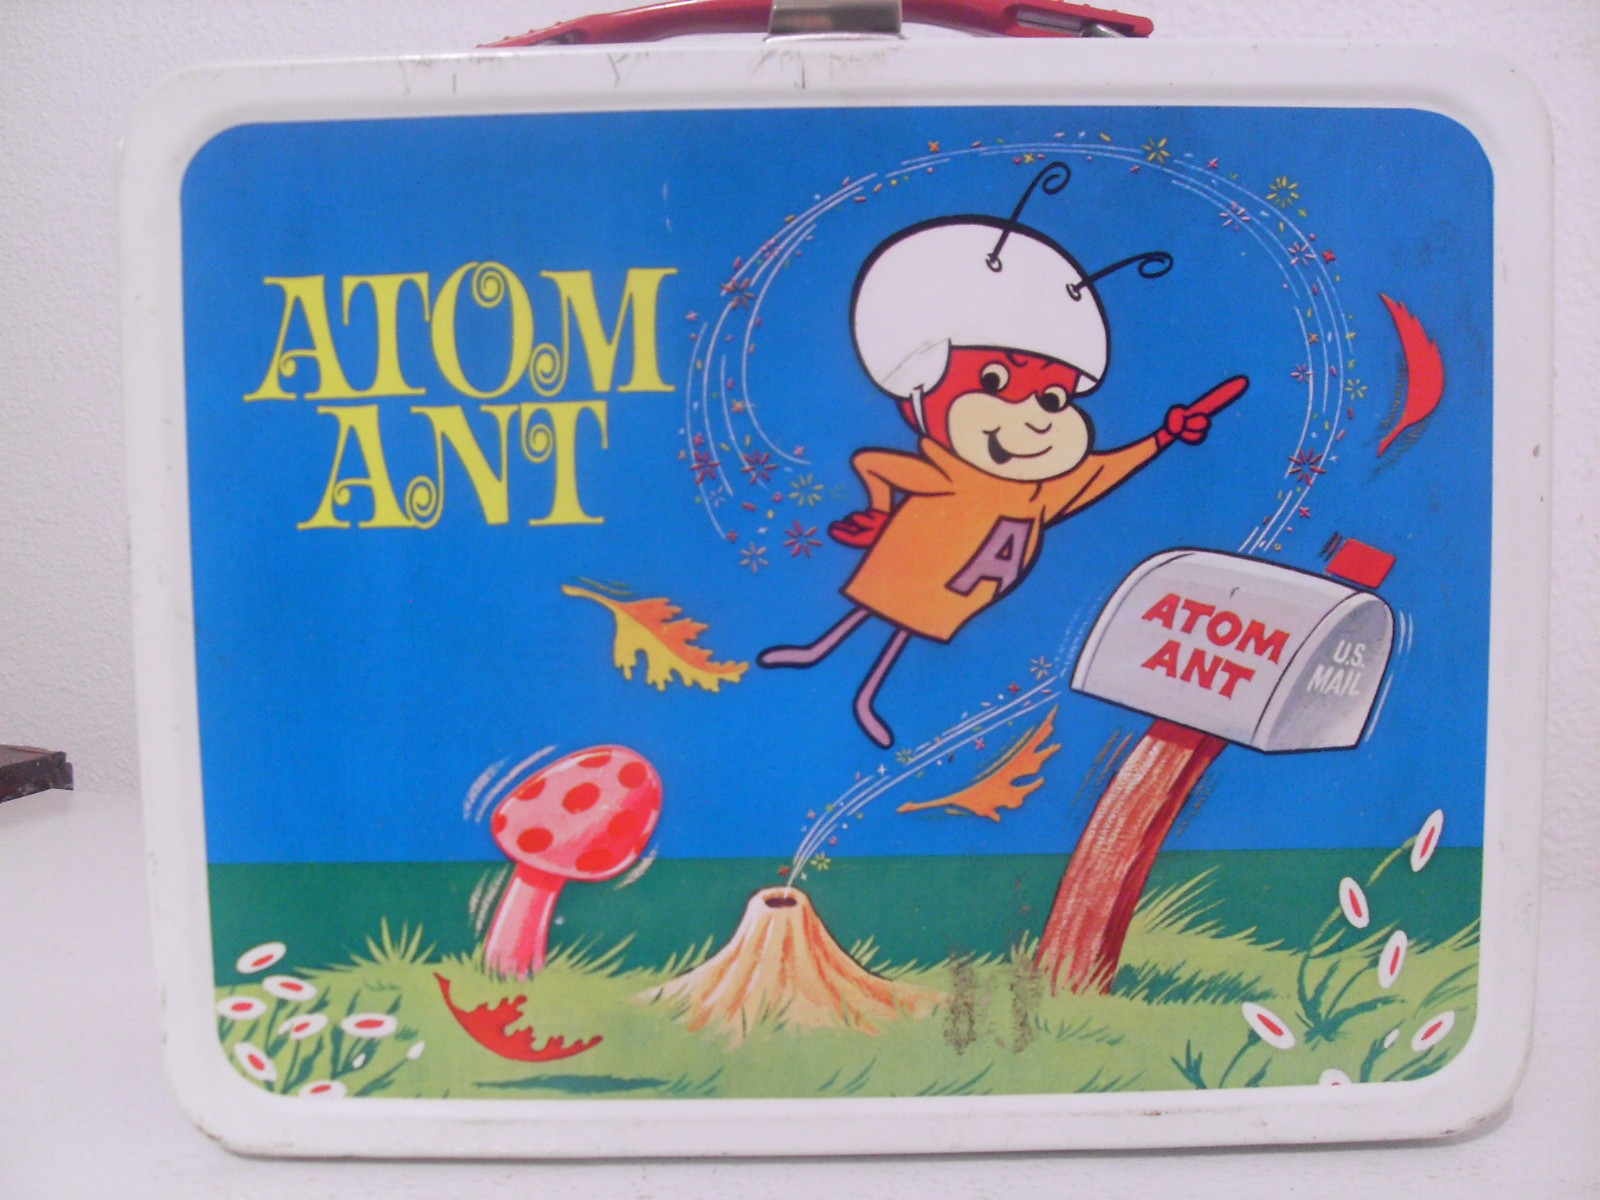 1966 Atom Ant Lunch Box Greatest Collectibles